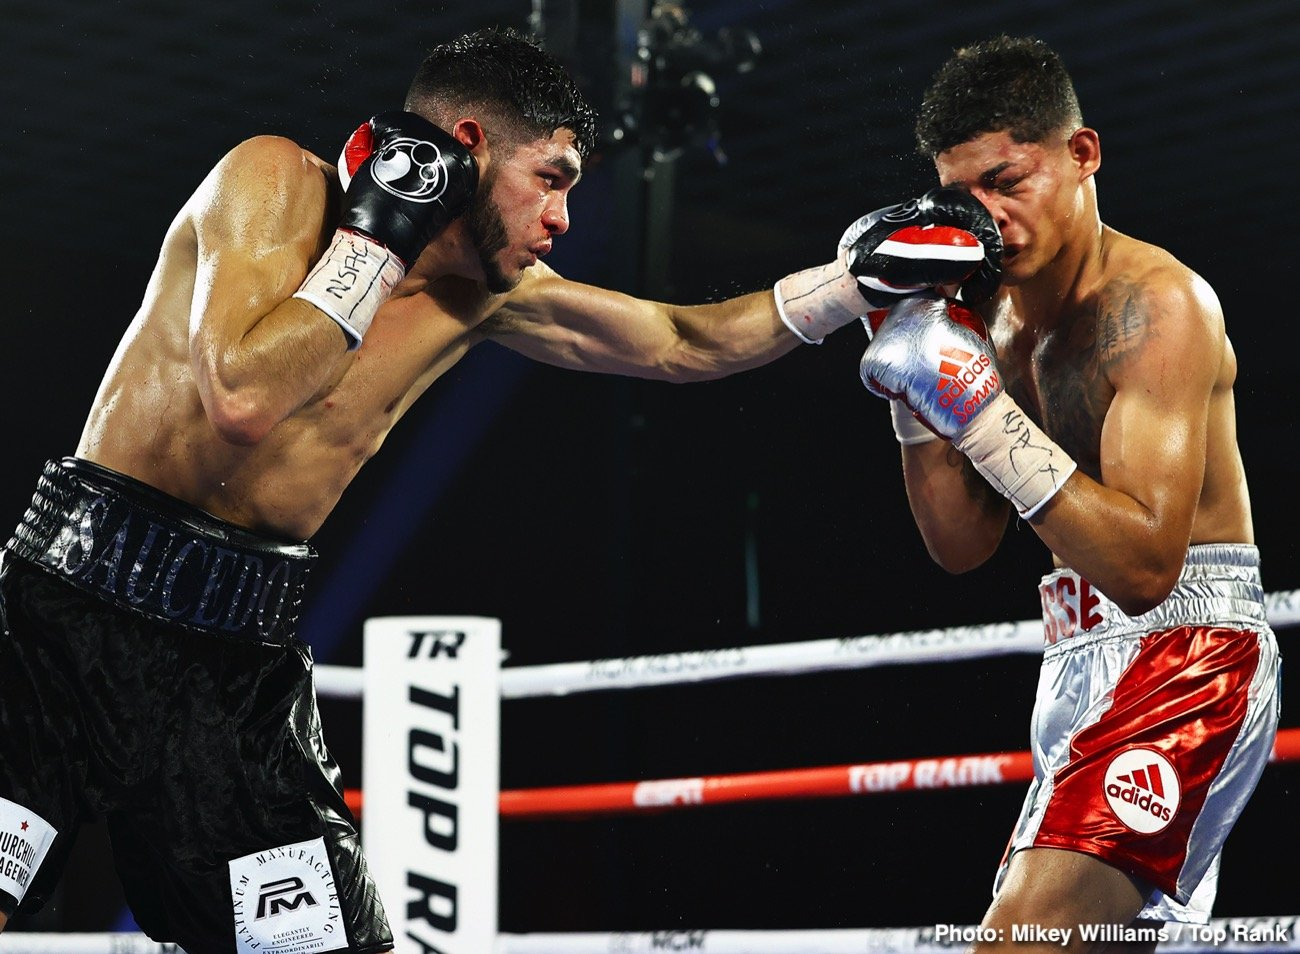 Alex Saucedo, Sonny Fredrickson - The fighting pride of Oklahoma City put forth a clinic in Las Vegas. Junior welterweight contender Alex Saucedo, fighting for the second time since falling short in a world title bid, bested Sonny Fredrickson by unanimous decision Tuesday evening at the MGM Grand Conference Center — Grand Ballroom.